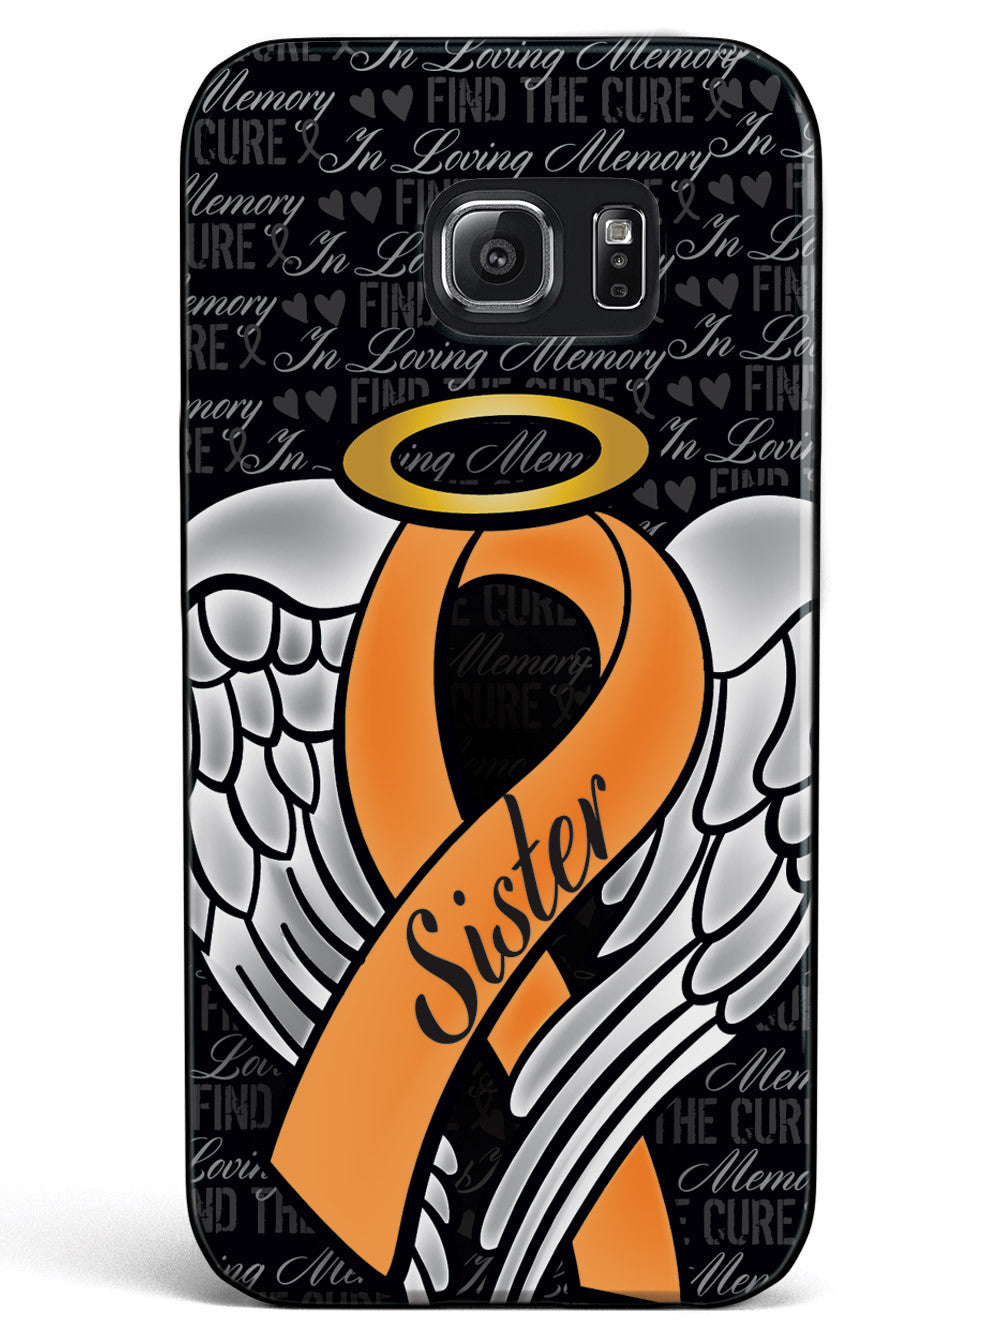 In Loving Memory of My Sister - Orange Ribbon Case